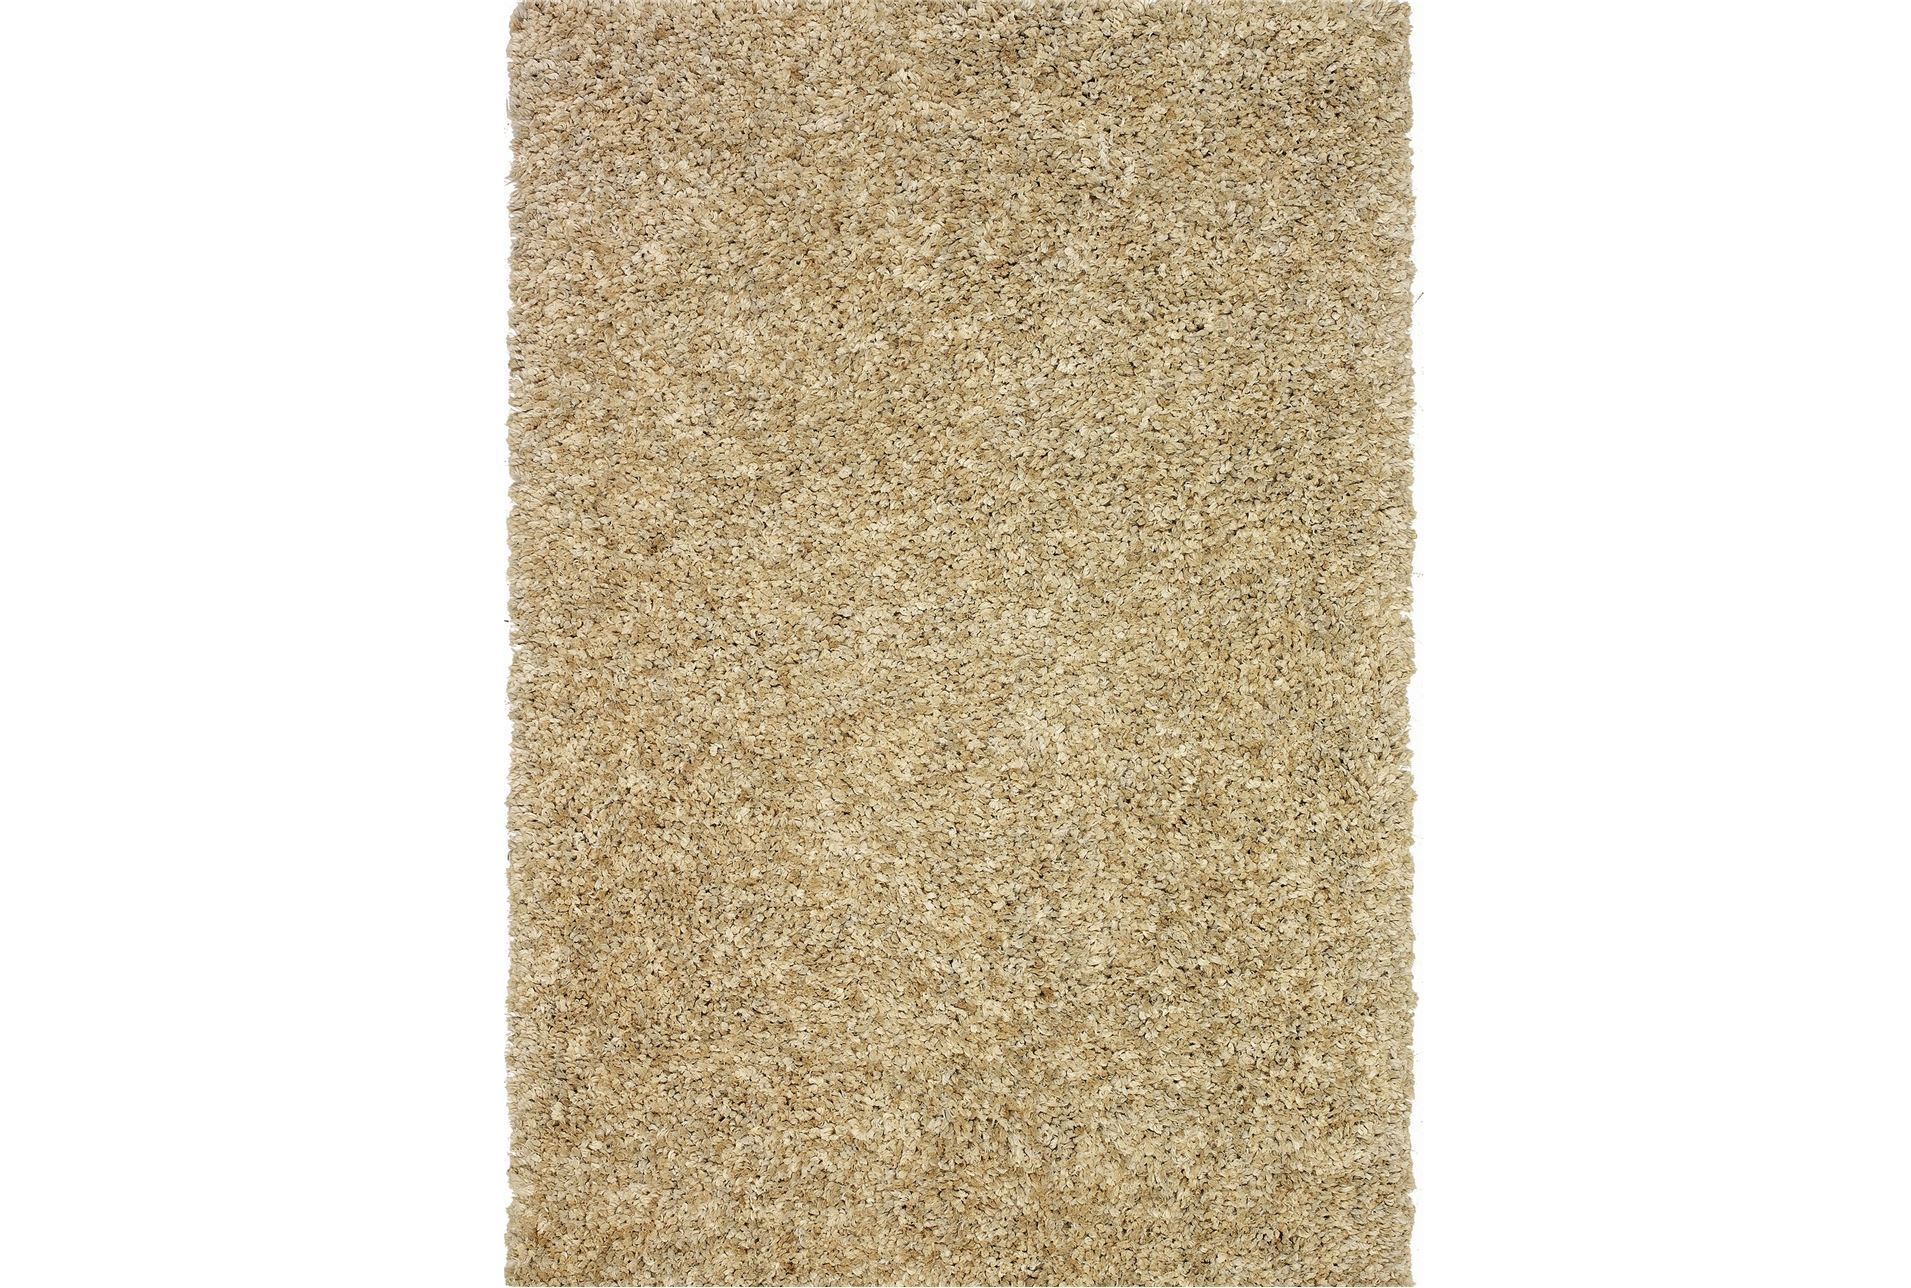 108x156 rug dolce sand living spaces